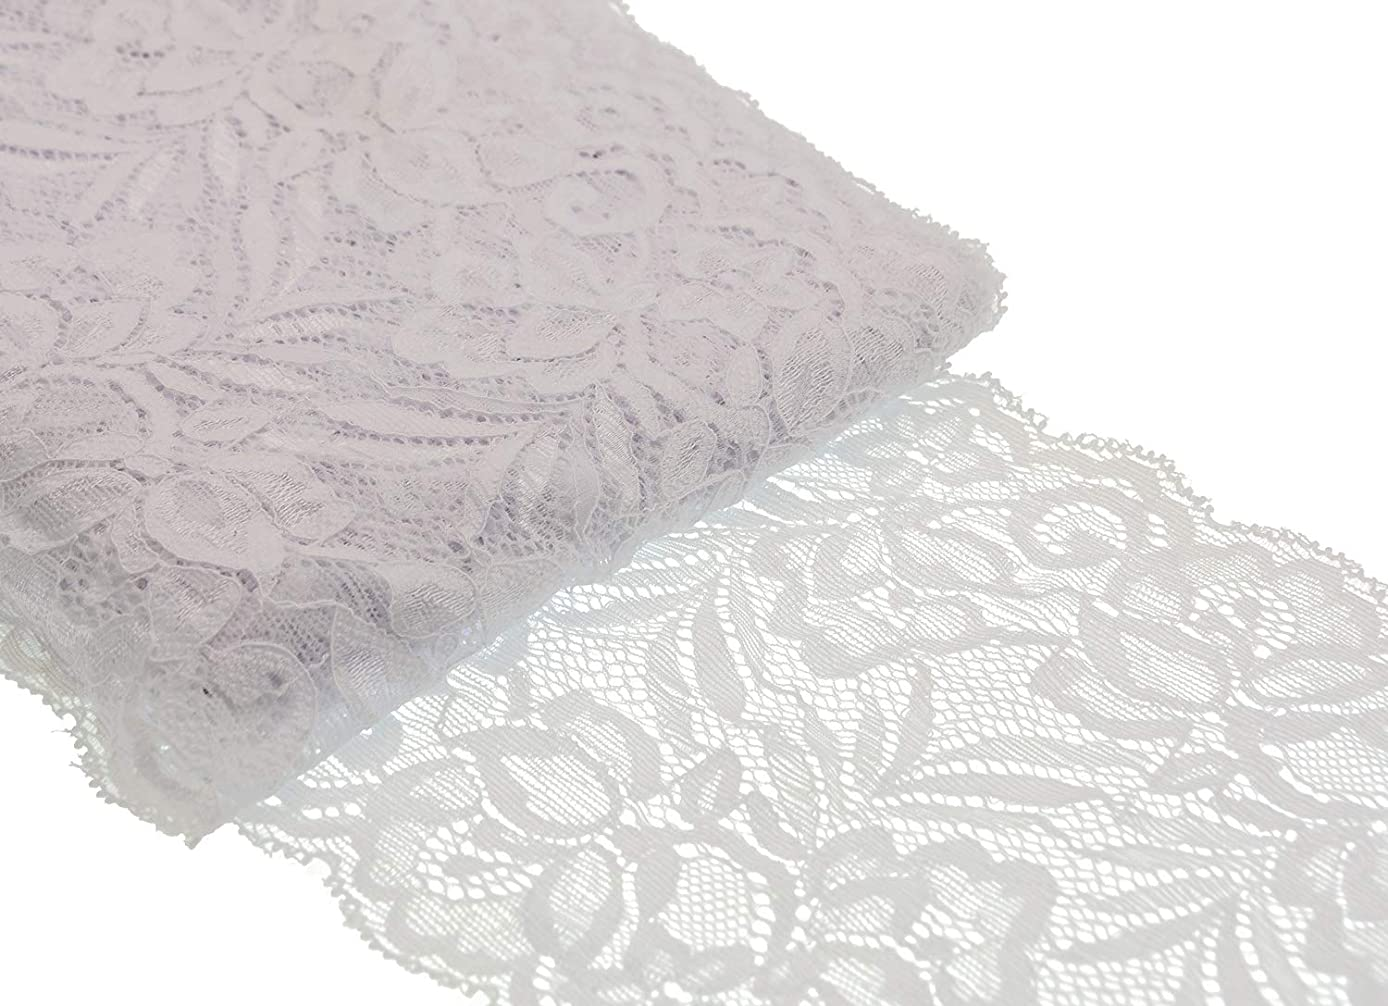 ATRibbons 10 Yards 6 Inch Wide Elastic Lace Trim Floral Pattern Lace Ribbon for Garment,Crafts and Gift Wrapping (White)